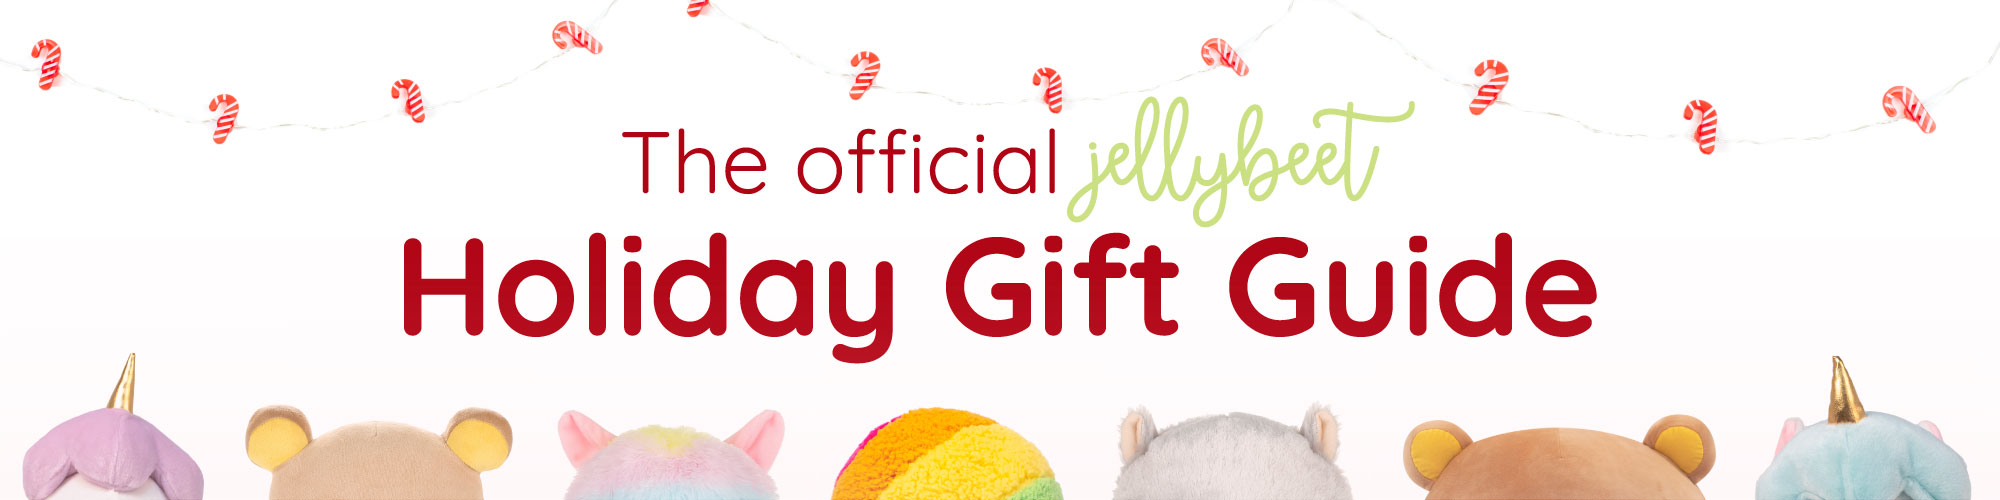 holiday-gift-guide-category-banner.jpg